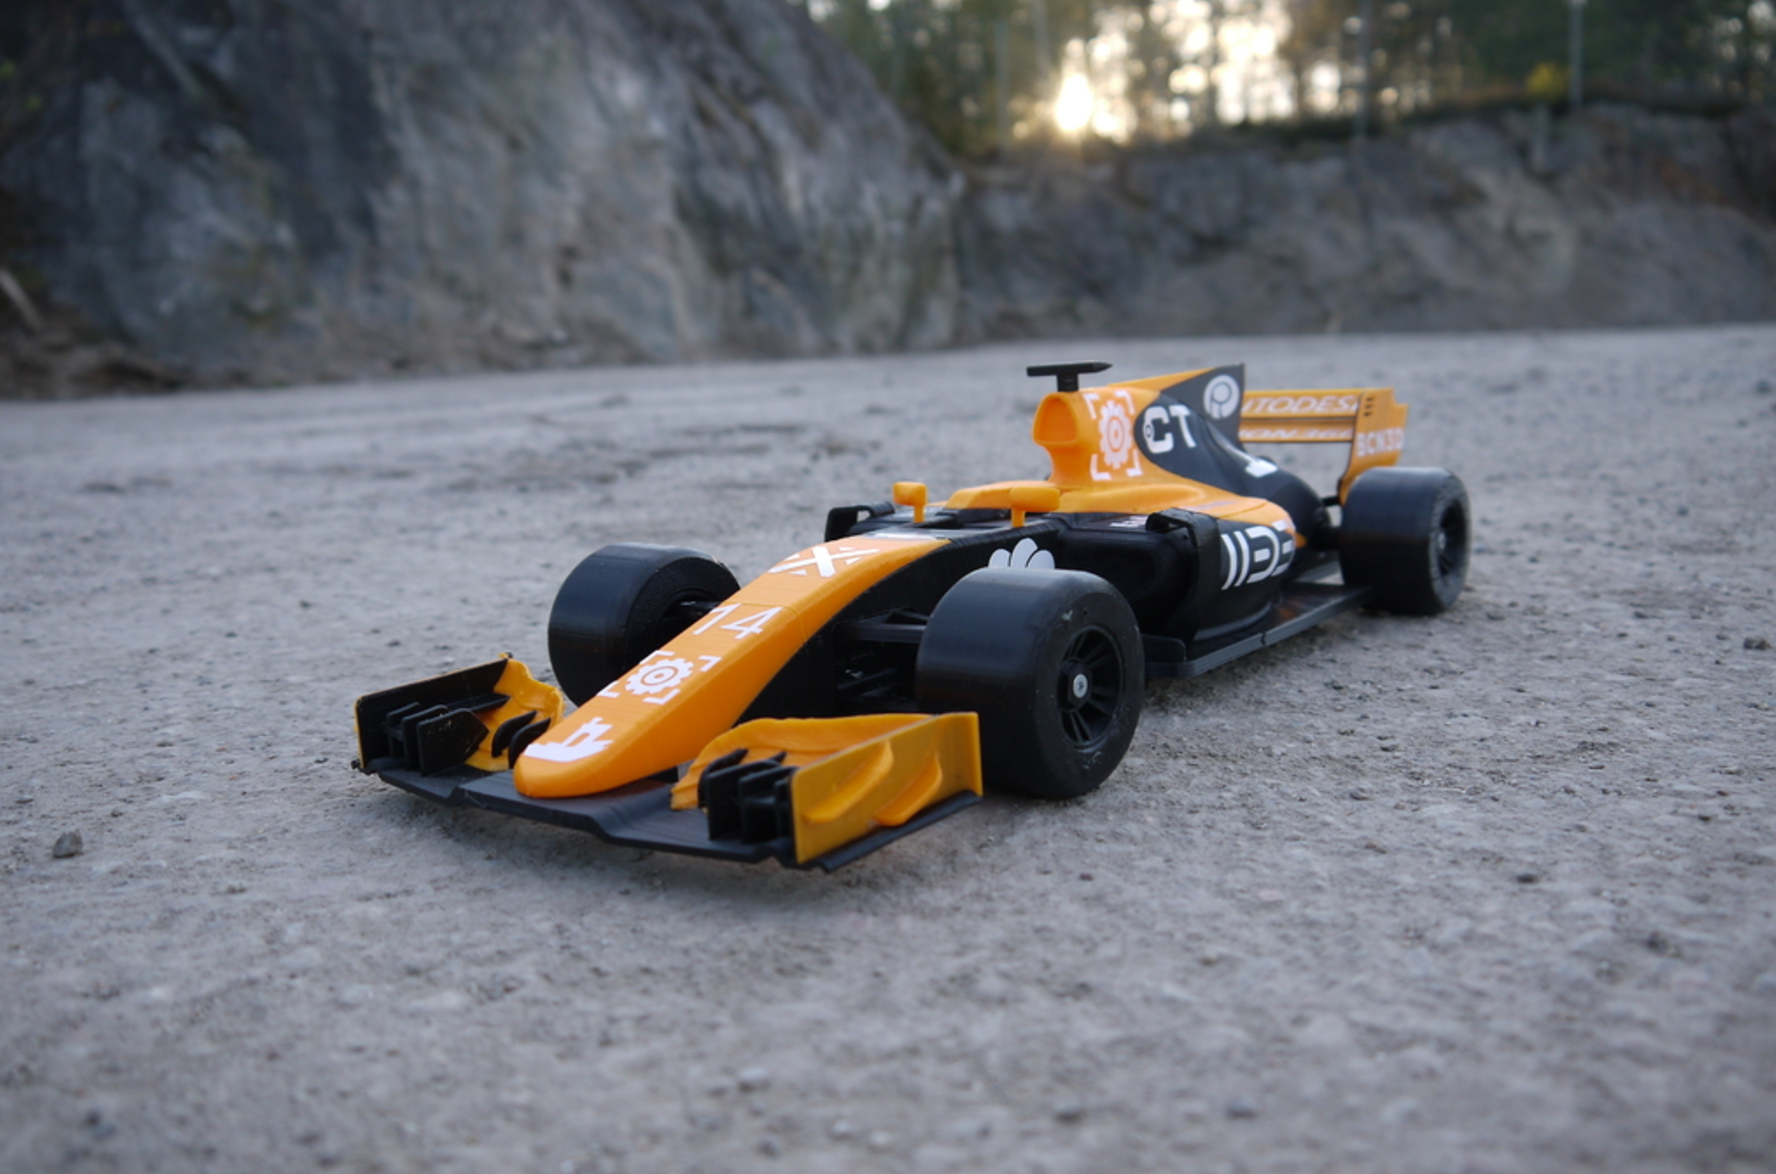 OpenRC F1 Dual Color McLaren Edition 3D Printing Free STL file Cults1.png Download free STL file OpenRC F1 Dual Color McLaren Edition • 3D printer model, DanielNoree